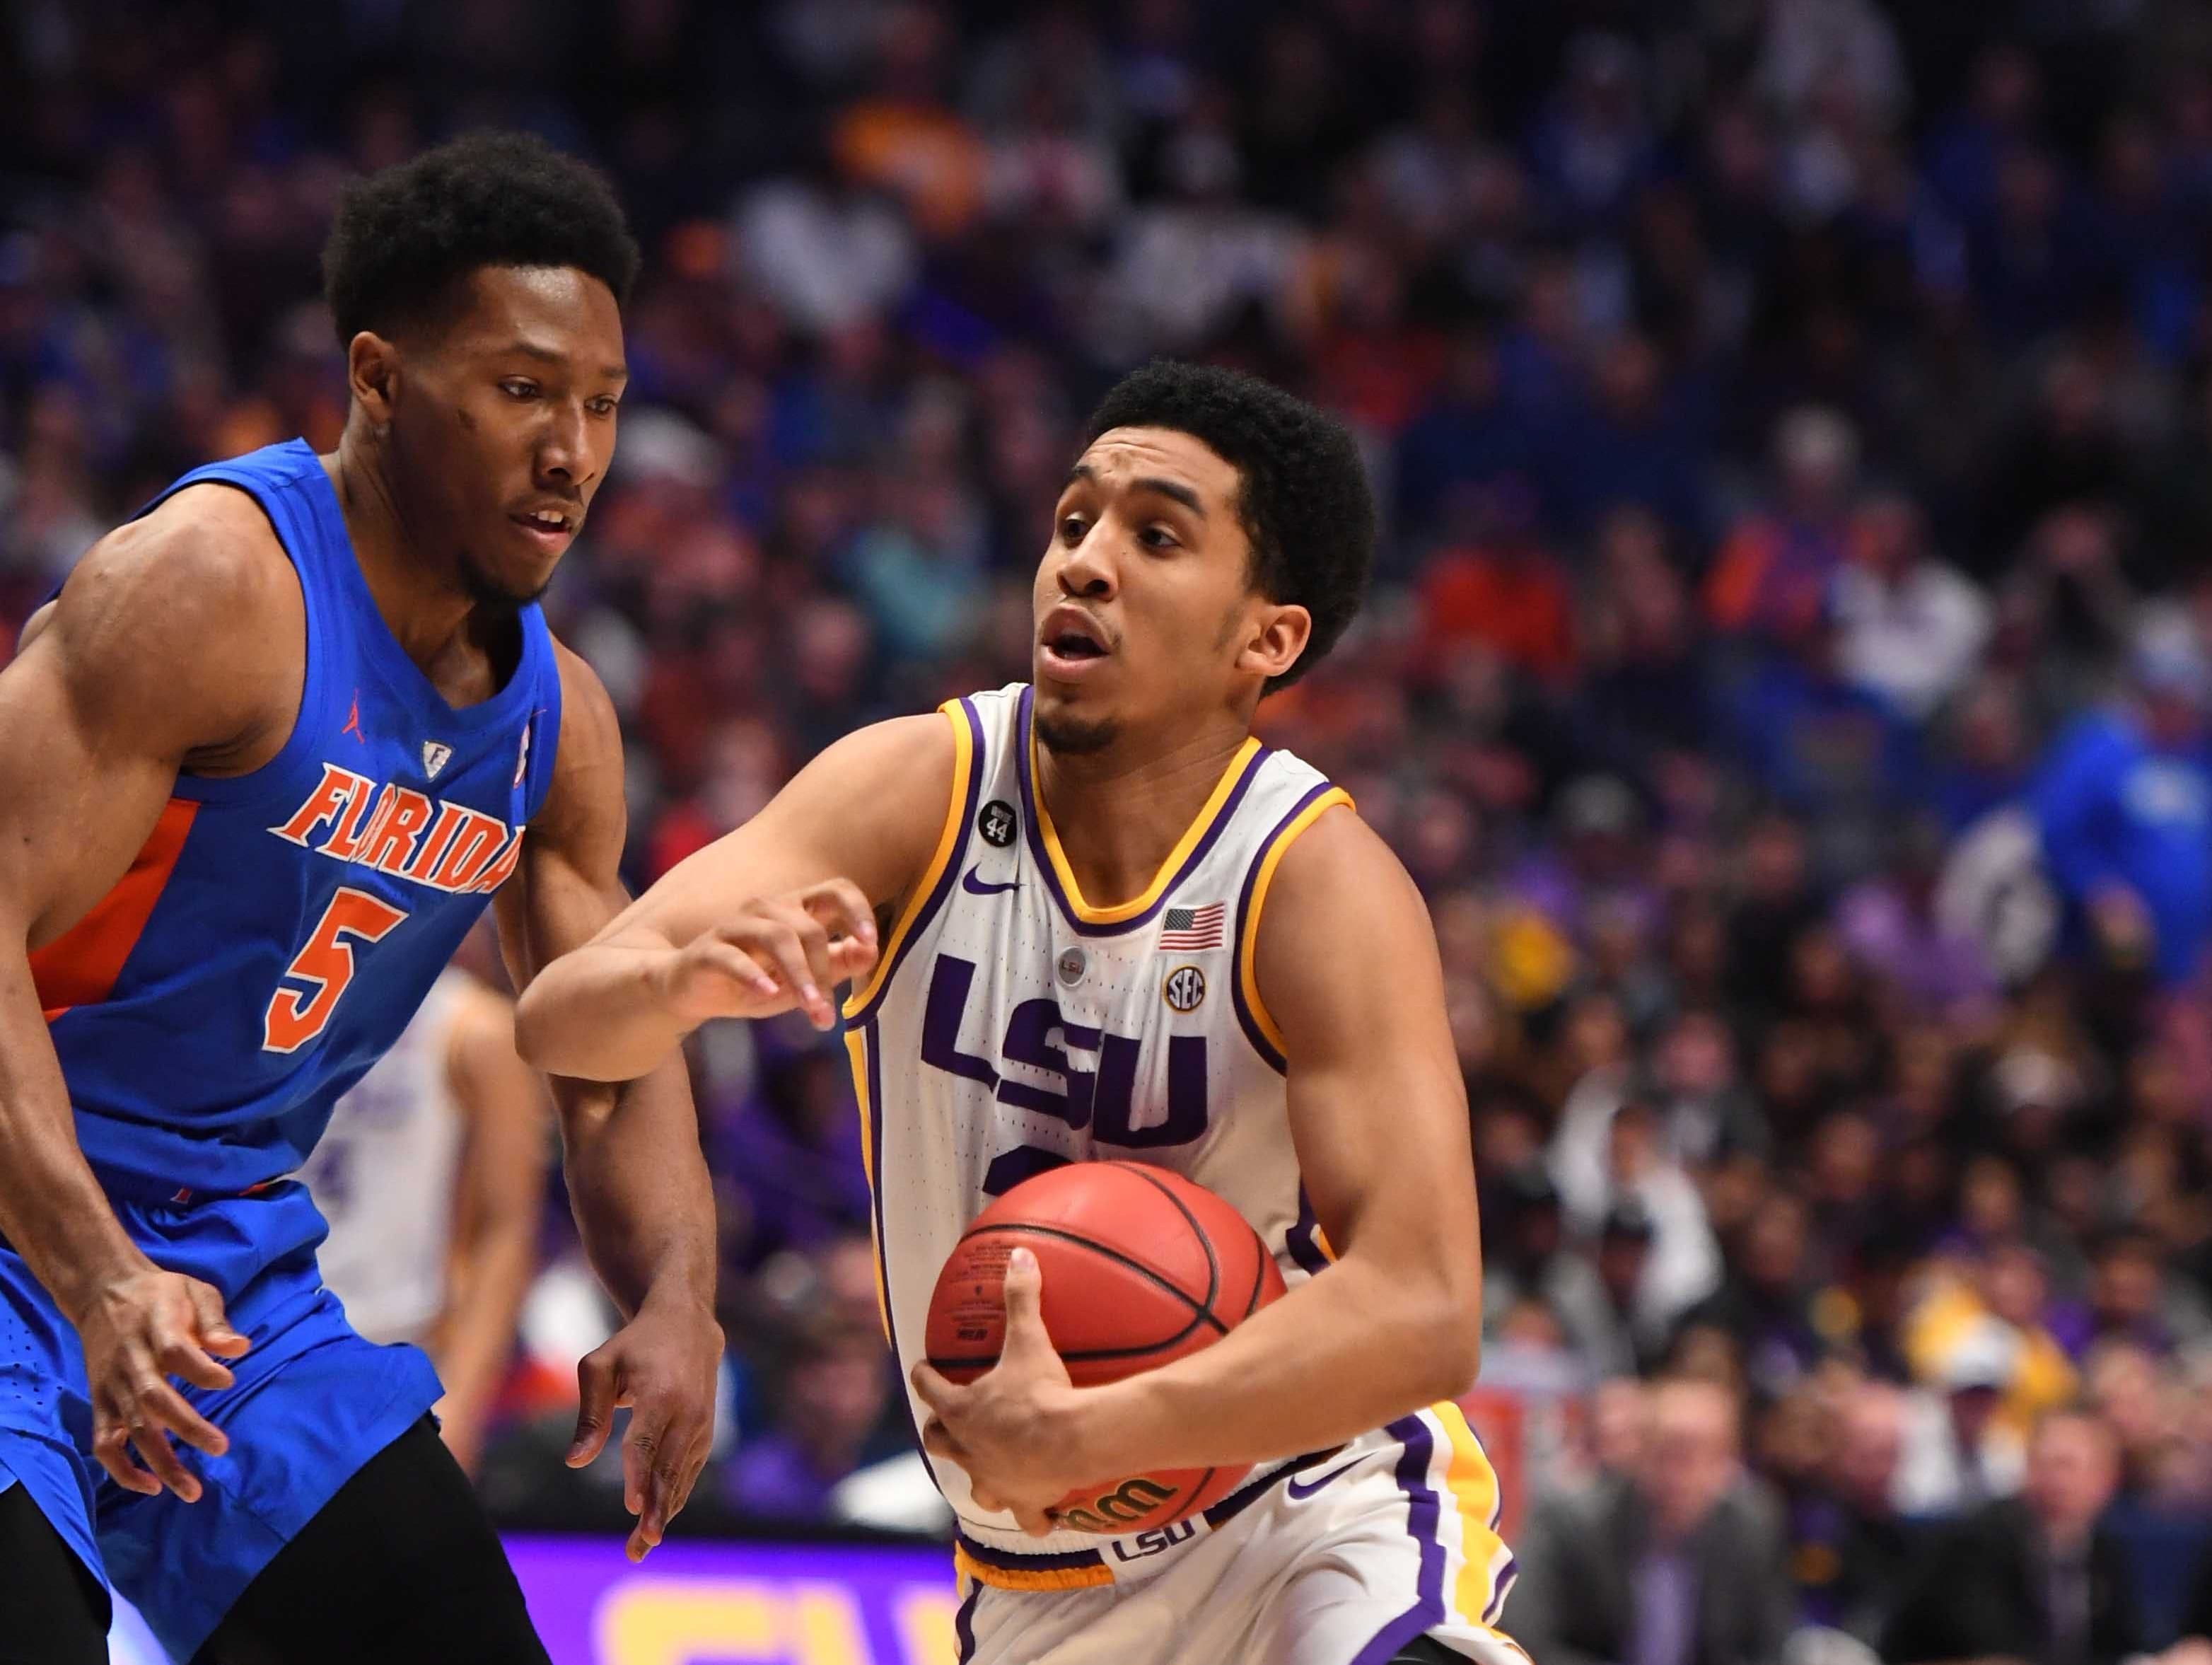 Mar 15, 2019; Nashville, TN, USA; LSU Tigers guard Tremont Waters (3) drives to the basket against Florida Gators guard KeVaughn Allen (5) during the first half of the SEC conference tournament at Bridgestone Arena. Mandatory Credit: Christopher Hanewinckel-USA TODAY Sports